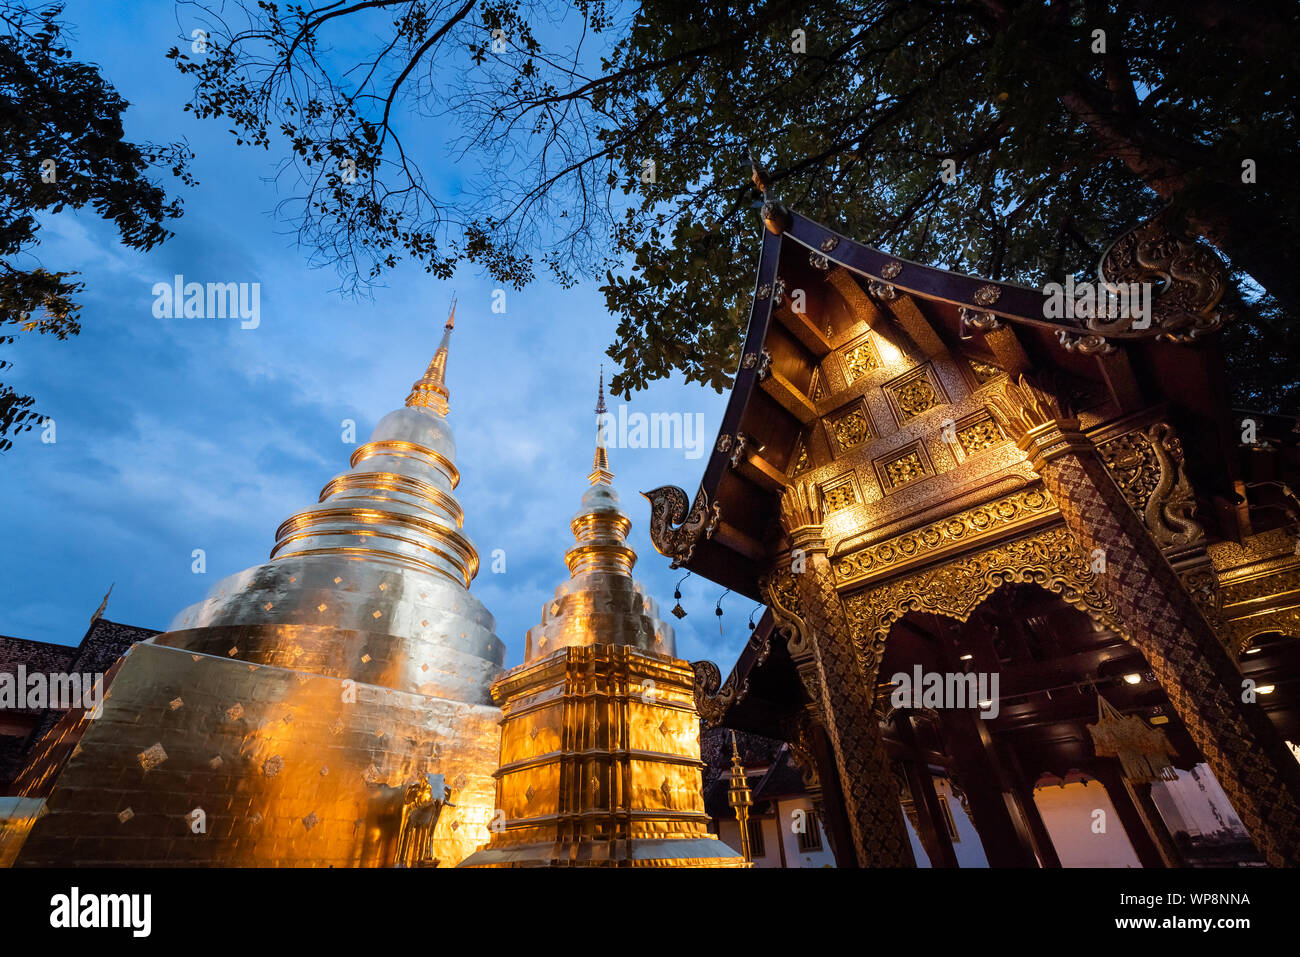 Golden pagoda in Wat Phra Singh temple. Chiang Mai, Thailand. Stock Photo